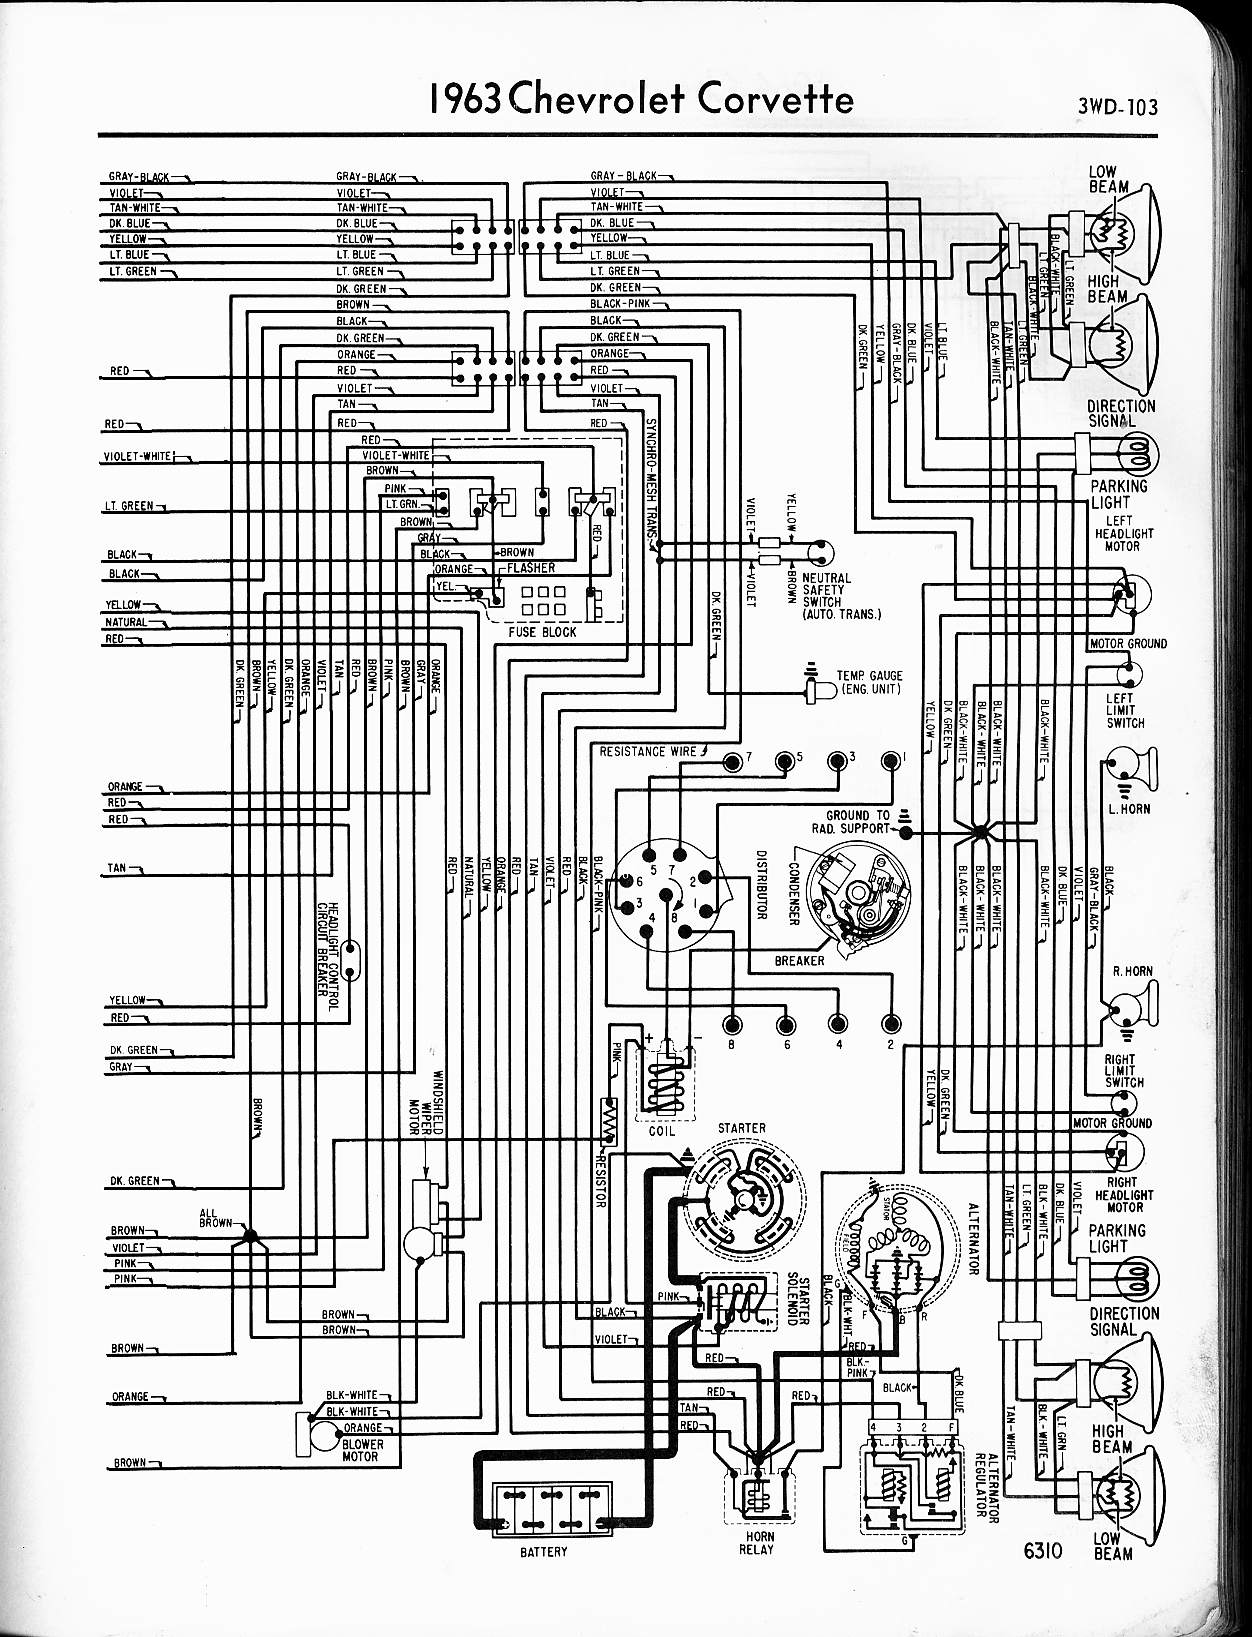 MWireChev63_3WD 103 57 65 chevy wiring diagrams 1968 corvette wiring diagram free at nearapp.co